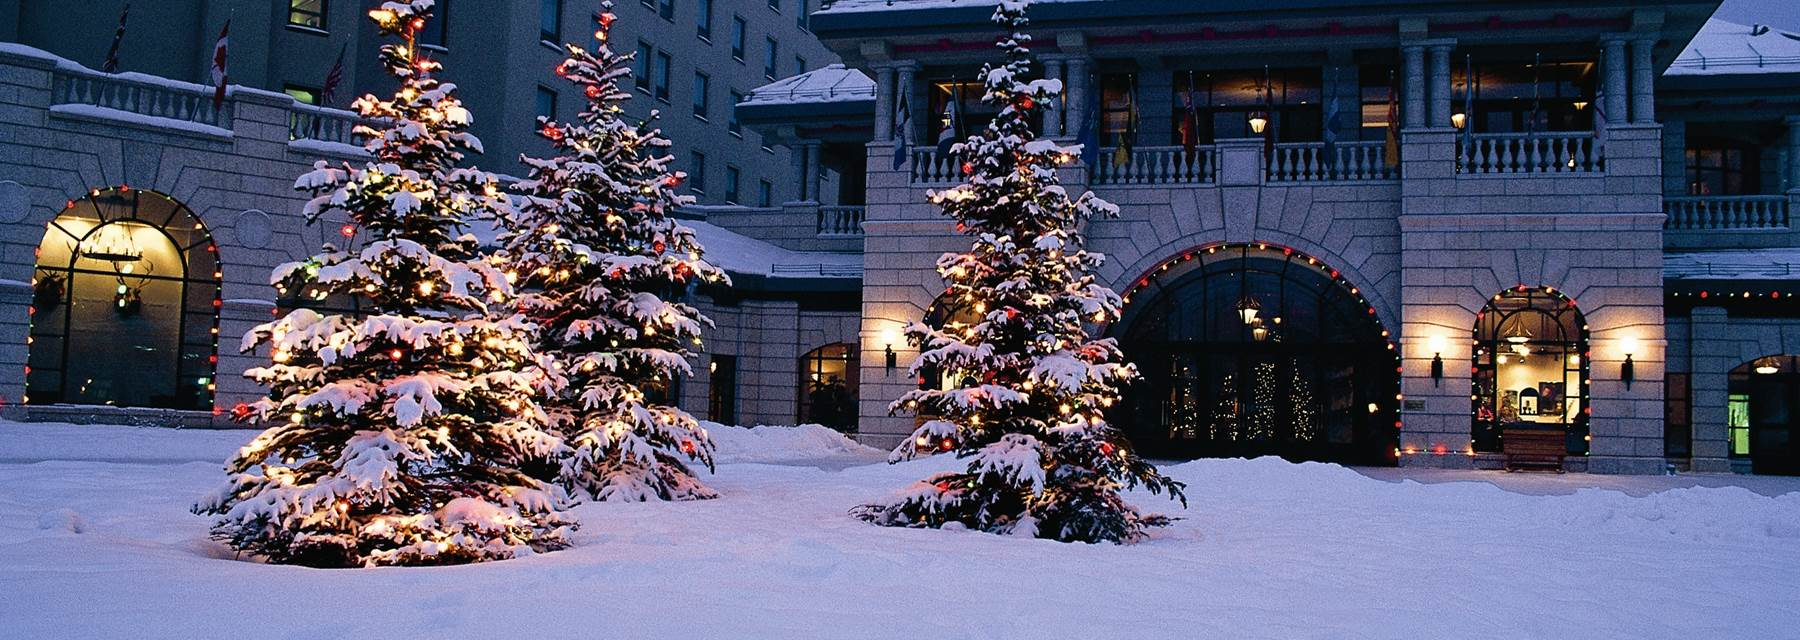 Fairmont chateau lake louise christmas canada for Where to go for a white christmas in usa